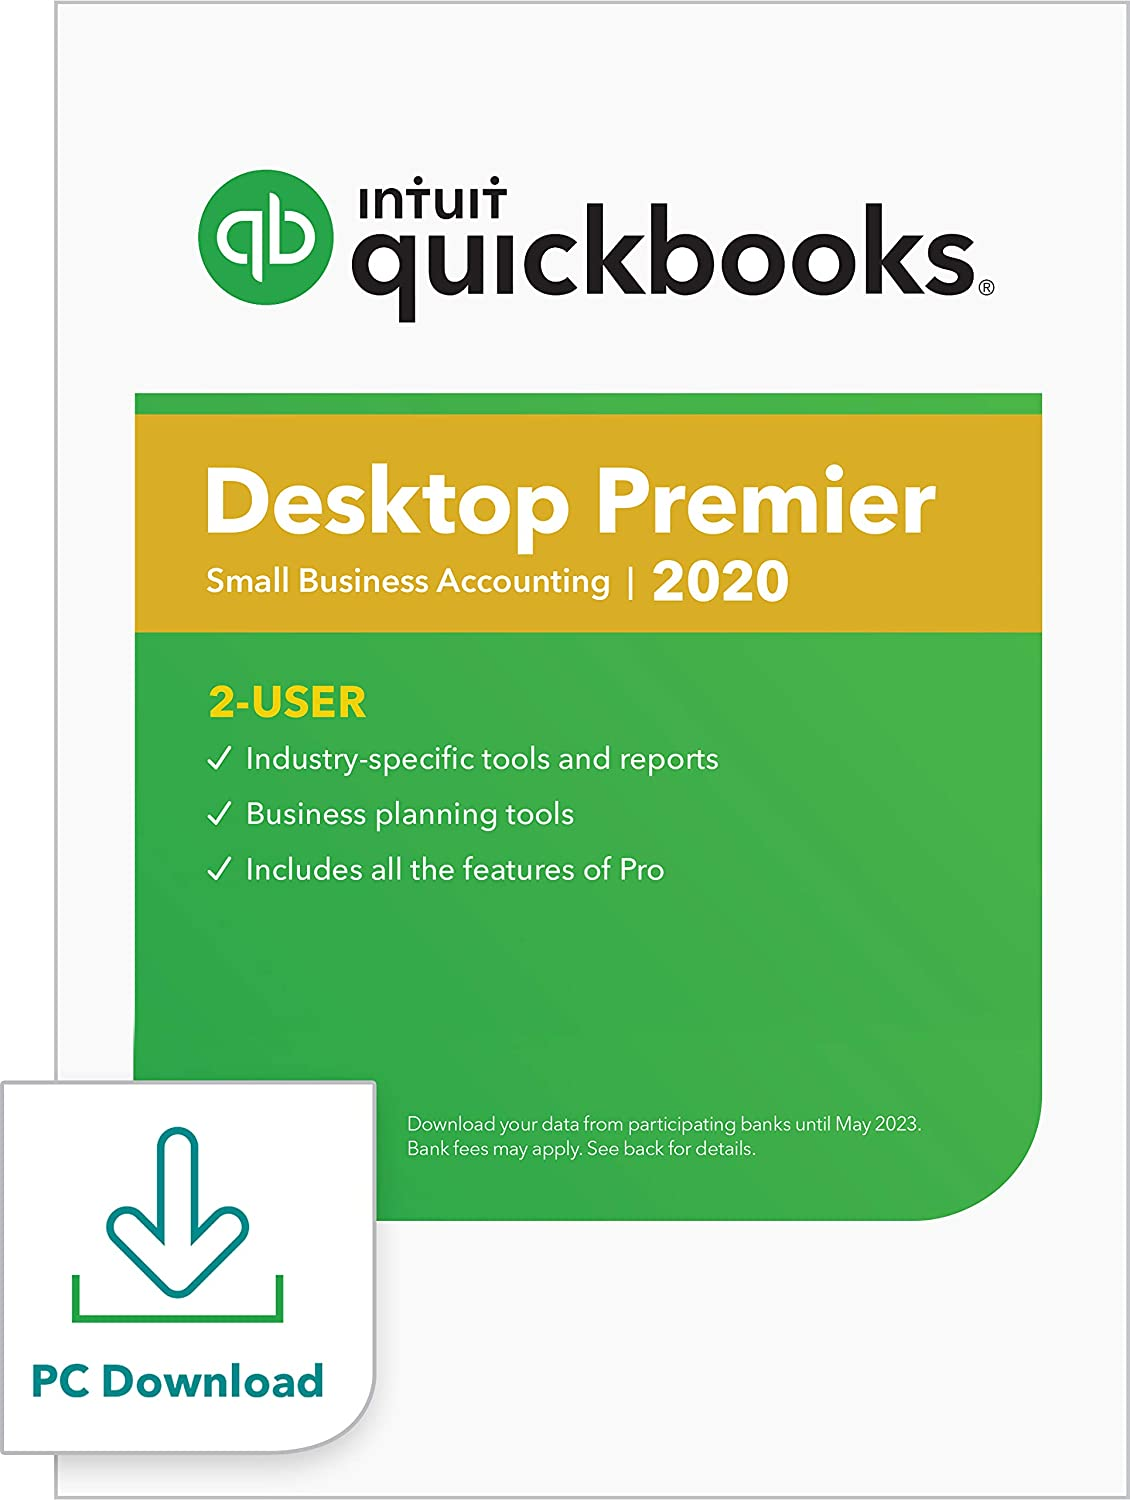 QuickBooks Desktop Premier 2020 Accounting Software for Business for Small Business - 2 User [PC Download]